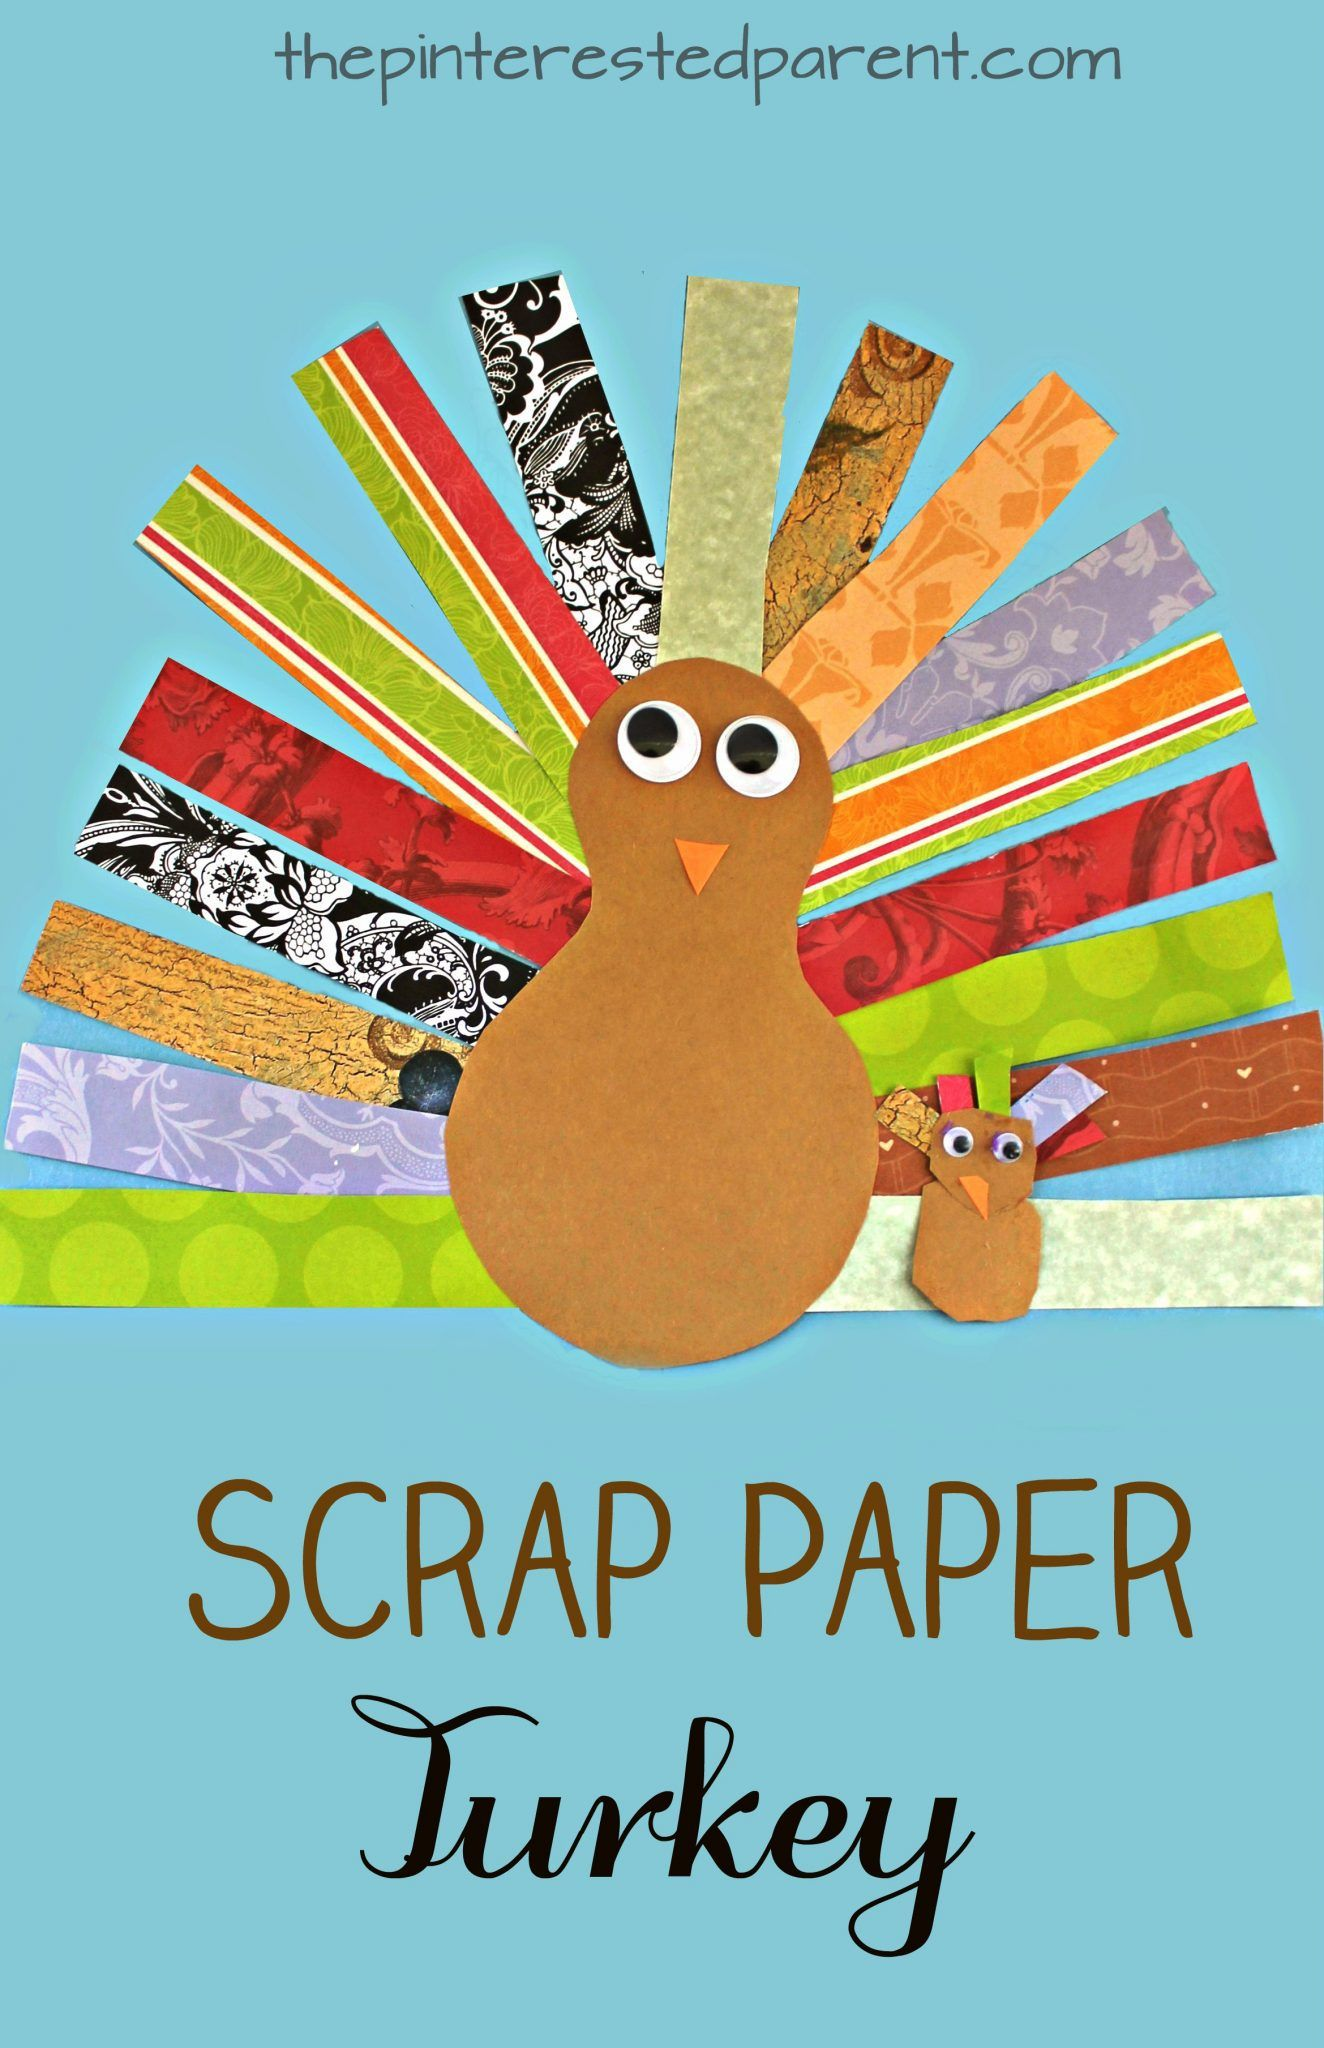 Scrap Paper Turkey Craft for Thanksgiving | The Pinterested Parent ...